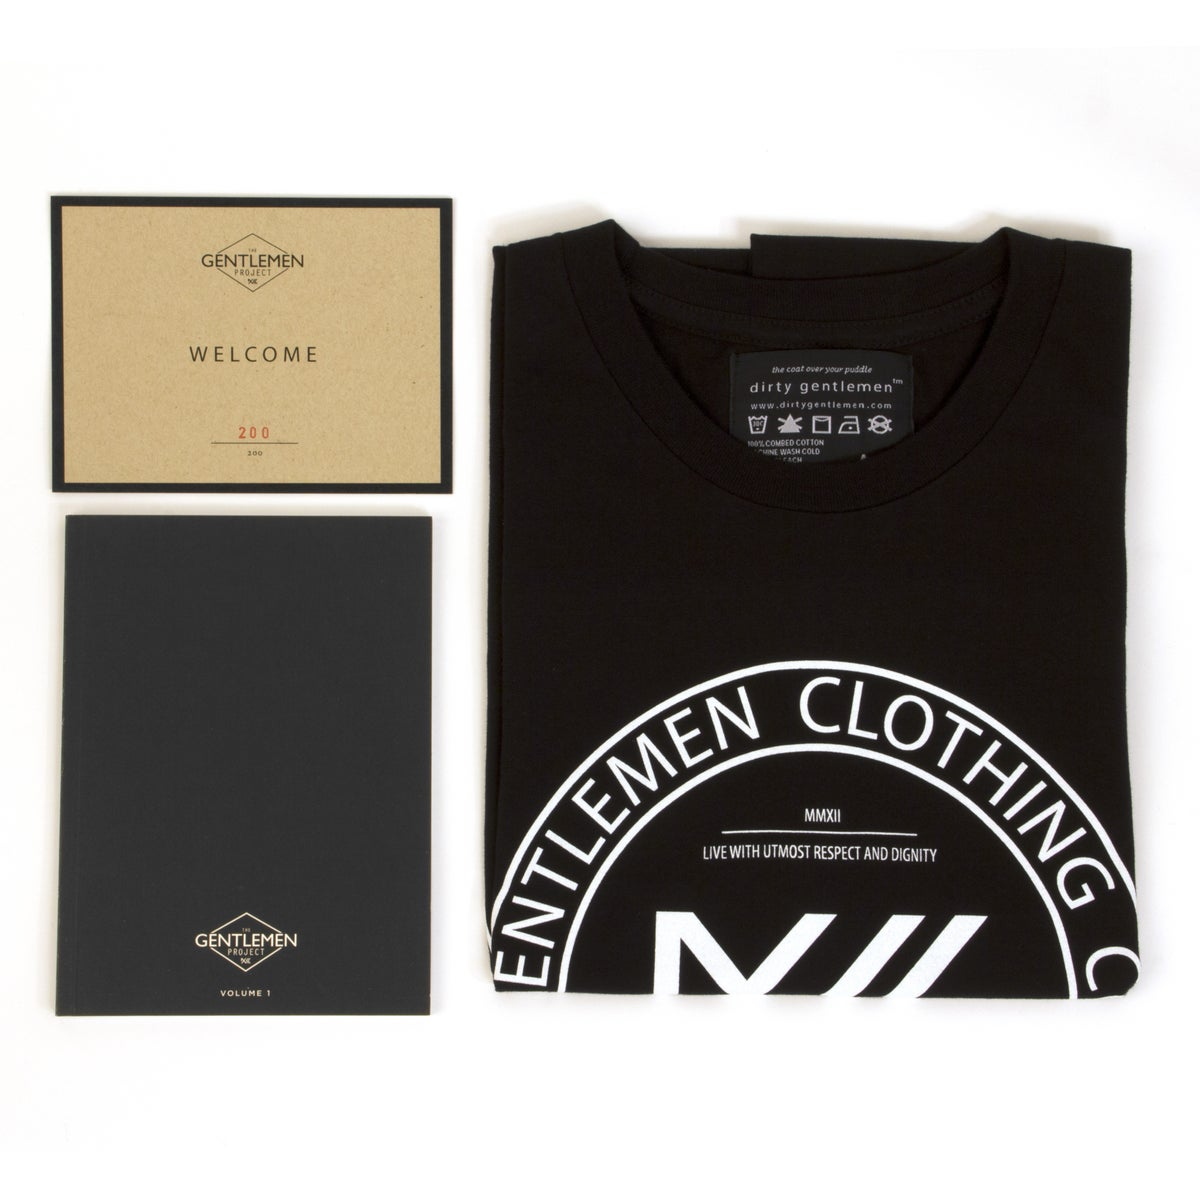 Image of Limited Edition Launch Package